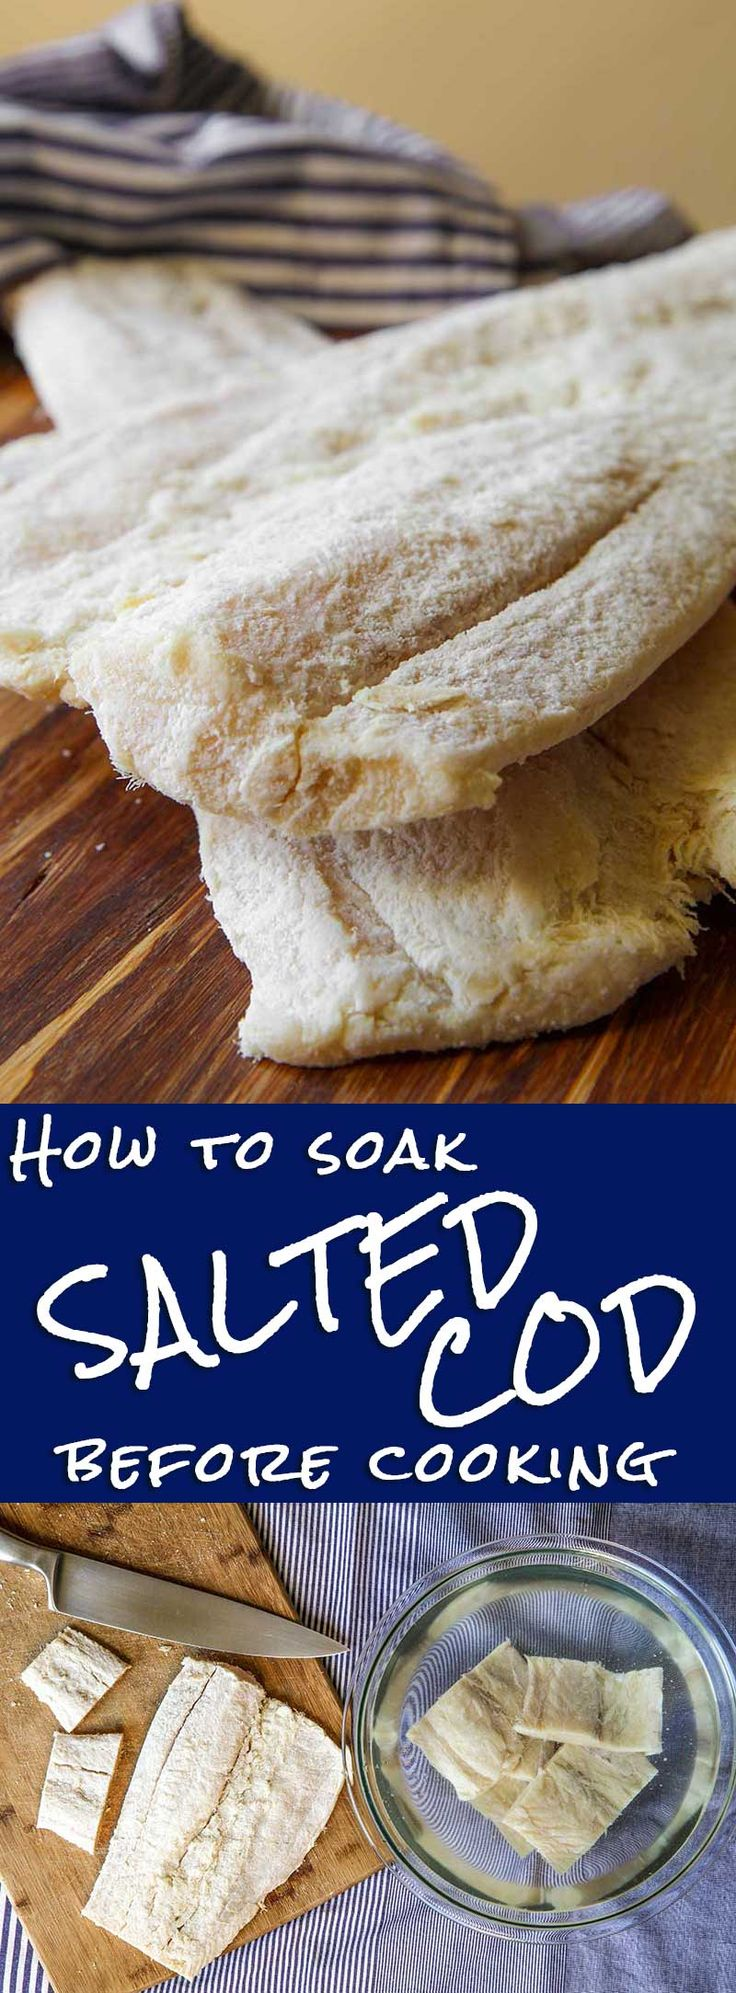 How to prepare salted cod - The salted cod is a specialty very popular on the tables of Potogallo, Spain and Italy. Bacalhau, or Baccalà, or Bacalao… whathever you call the salted cod, it is a true delight to enjoy all year long. To prepare a delicious dish with salted cod is indispensable follow properly the procedure to remove the salt. Below I explain a foolproof method to obtain a salted cod ready to cook! - Italian recipe Venetian recipes pescetarian feast healthy fish dinner gluten…